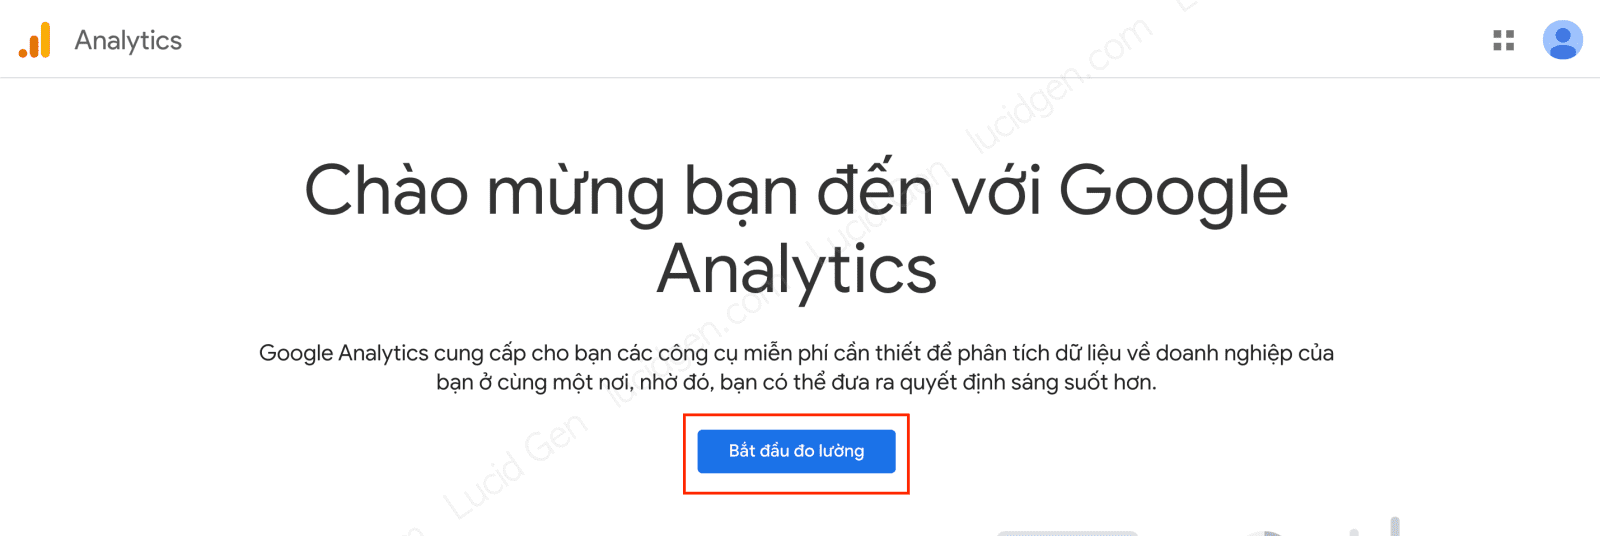 How to add Google Analytics to website - Go to Google Analytics page and click Get Started